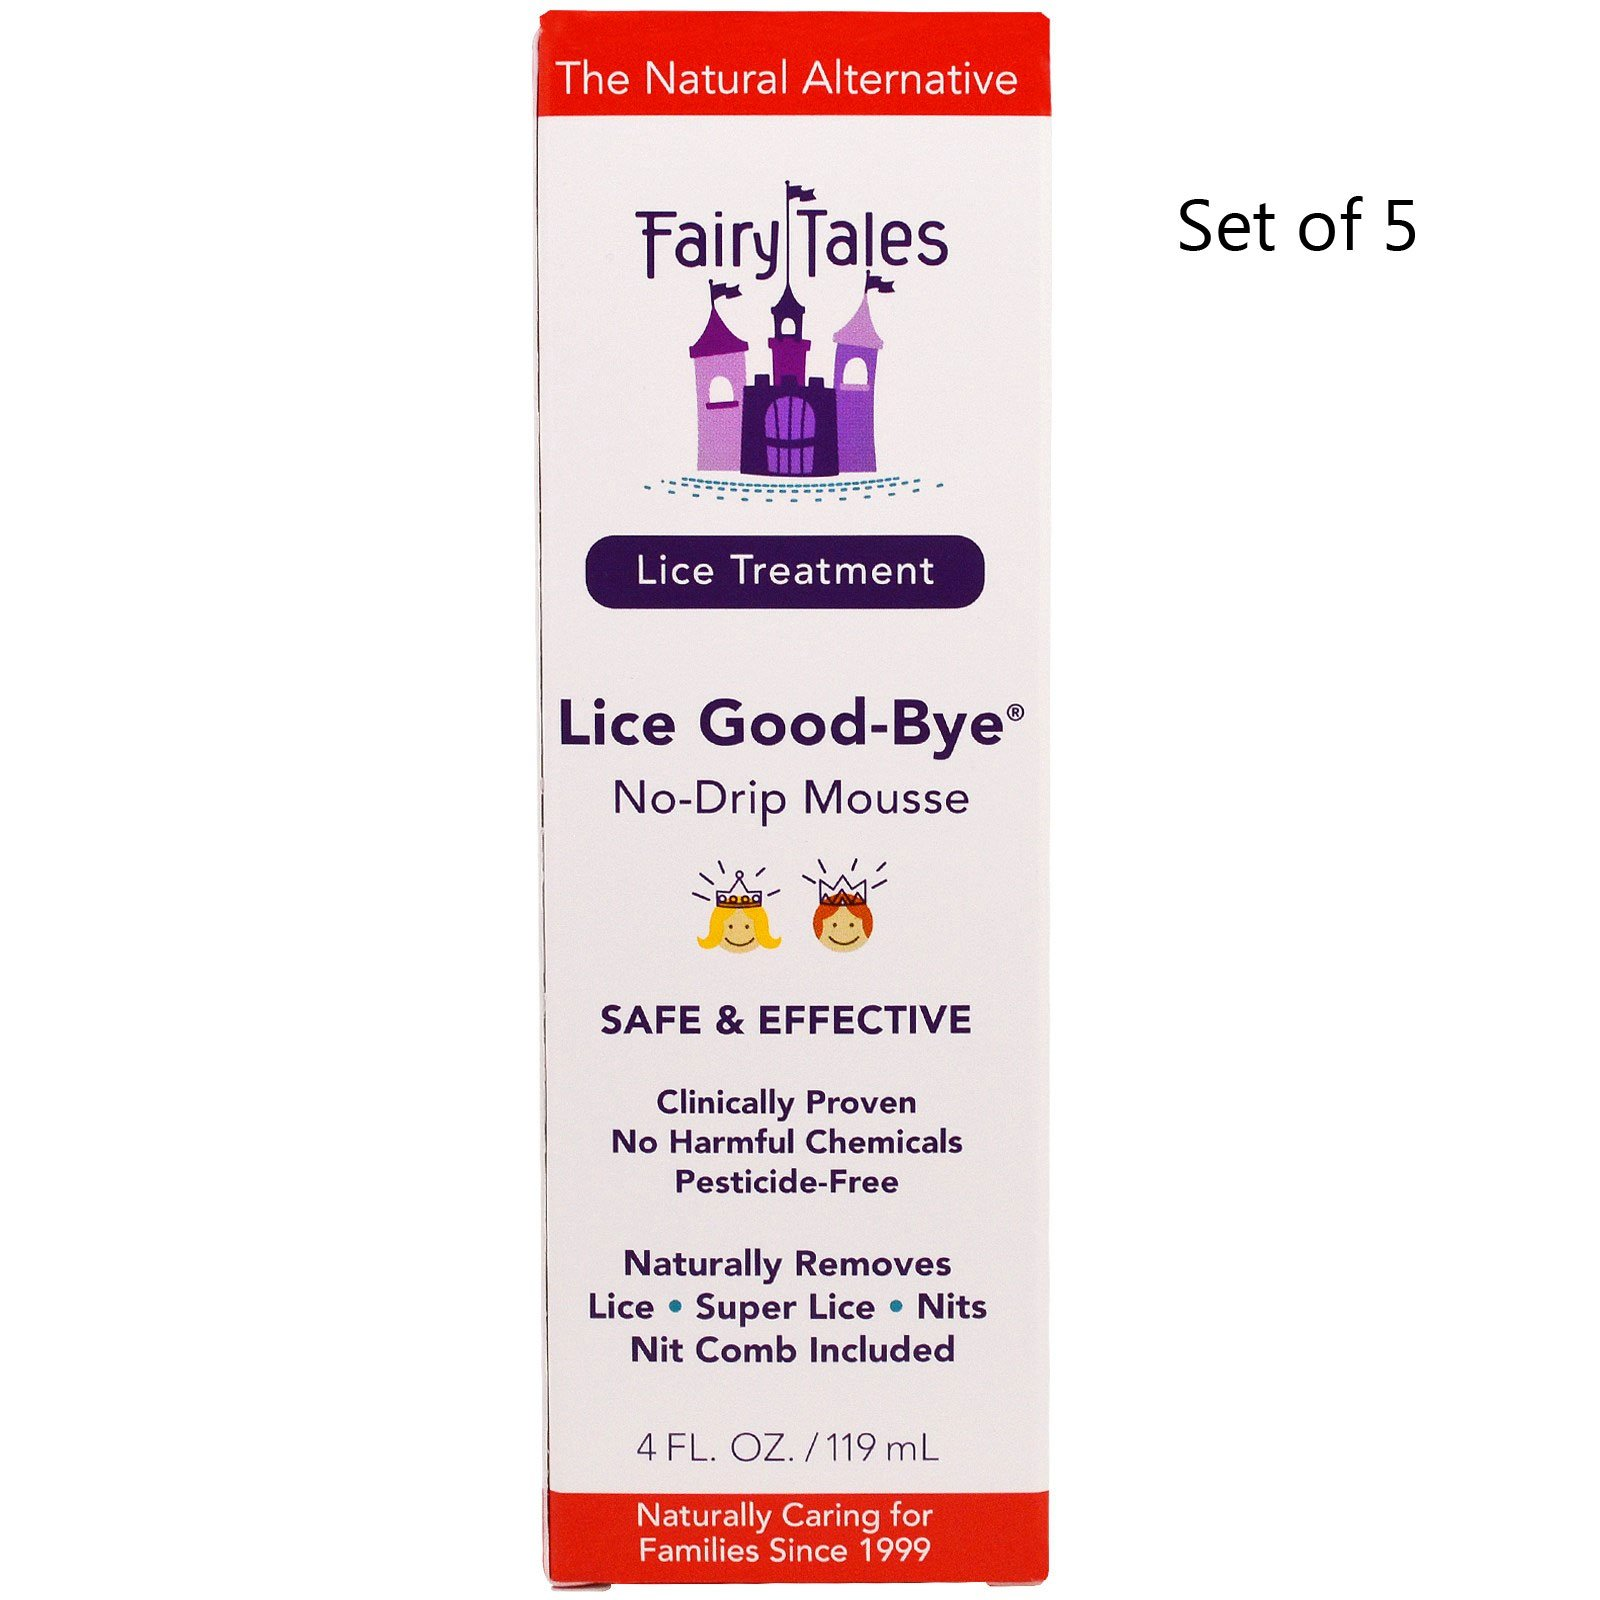 Fairy Tales Lice Good-Bye Nit Removal System w/ Comb 1 kit (Pack of 5)